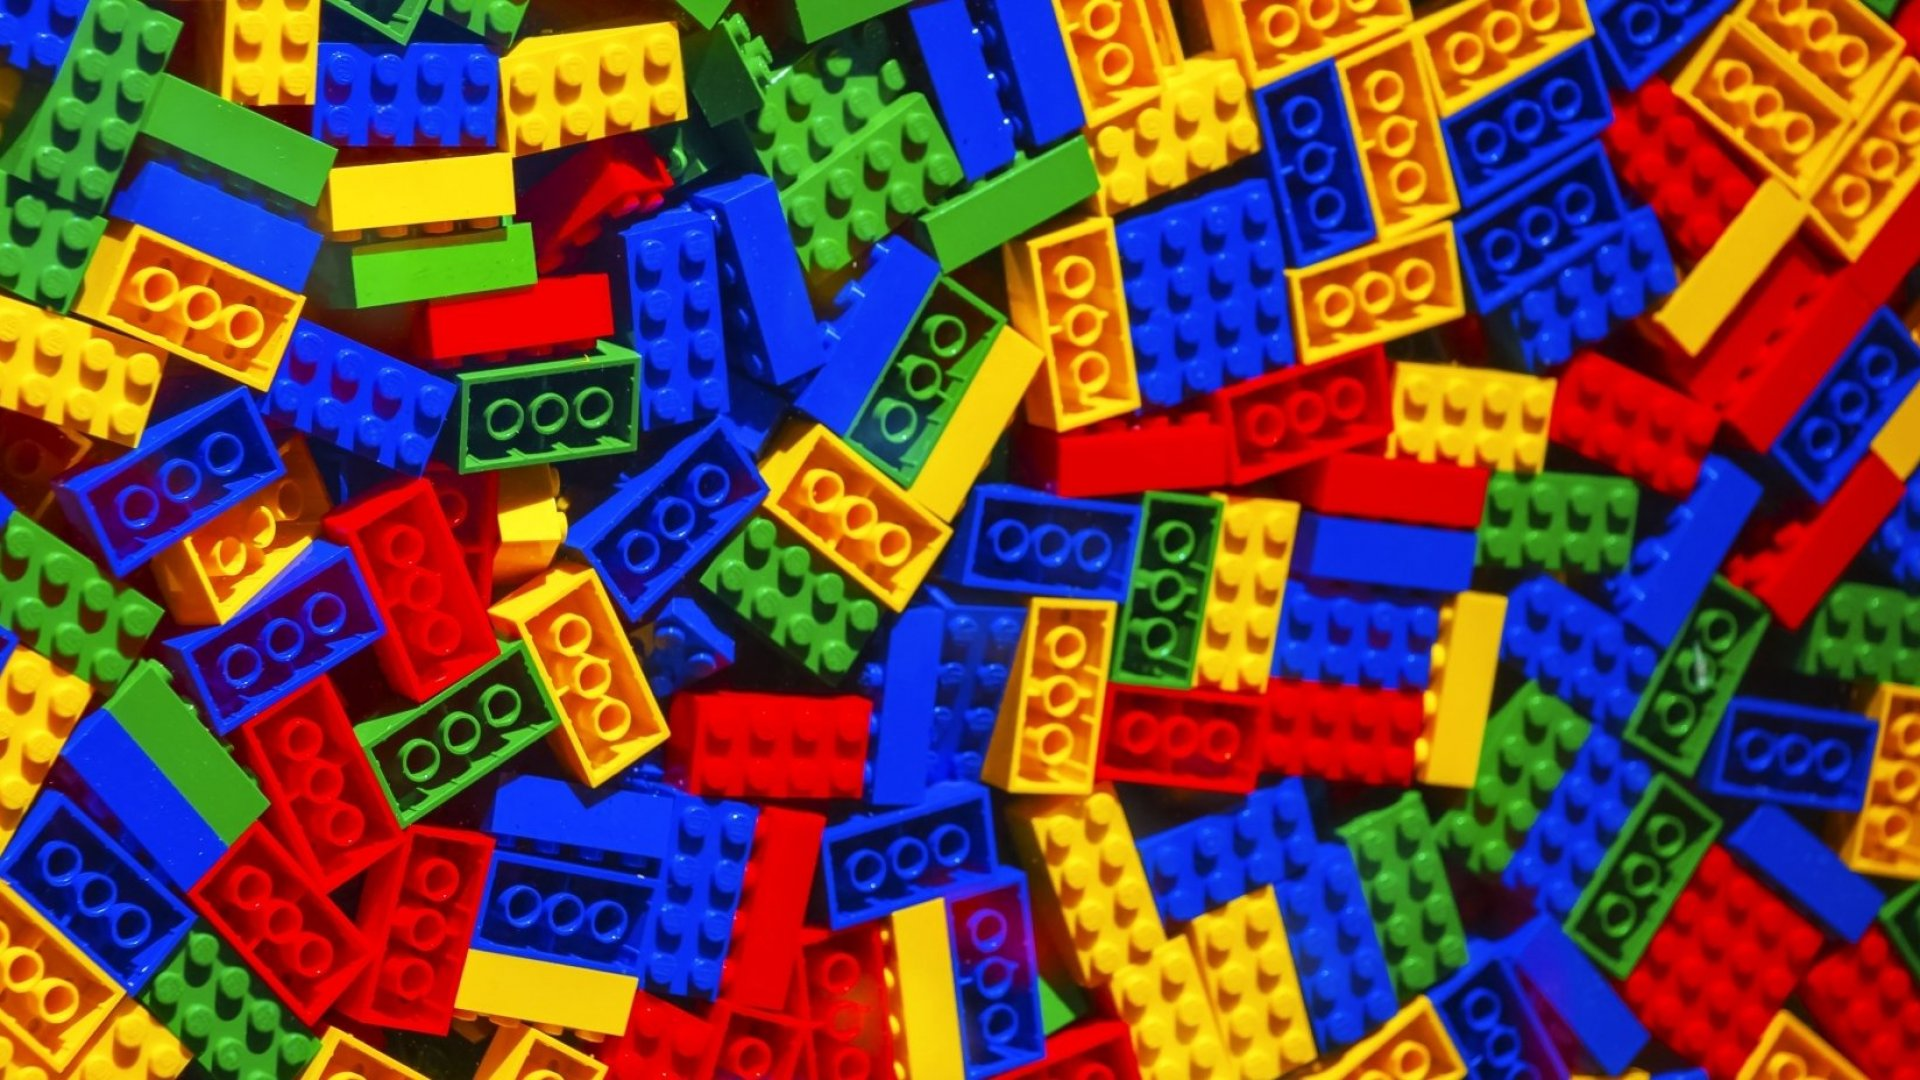 Ikea, Lego, and Volvo Just Identified 4 Radical Ways to Hack Management